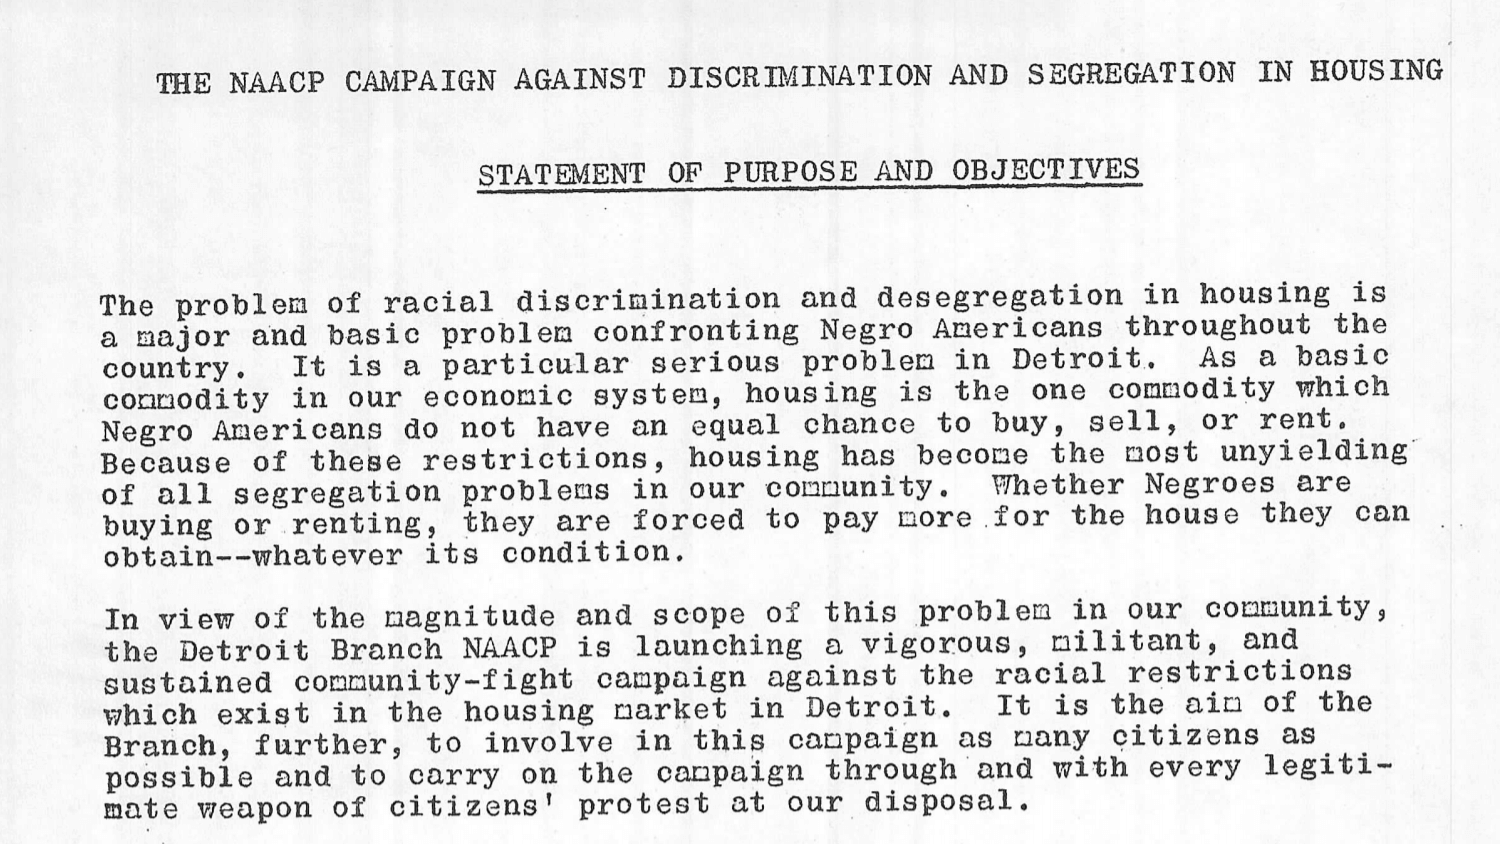 NAACP Campaign Against Discrimination and Segregation in Housing